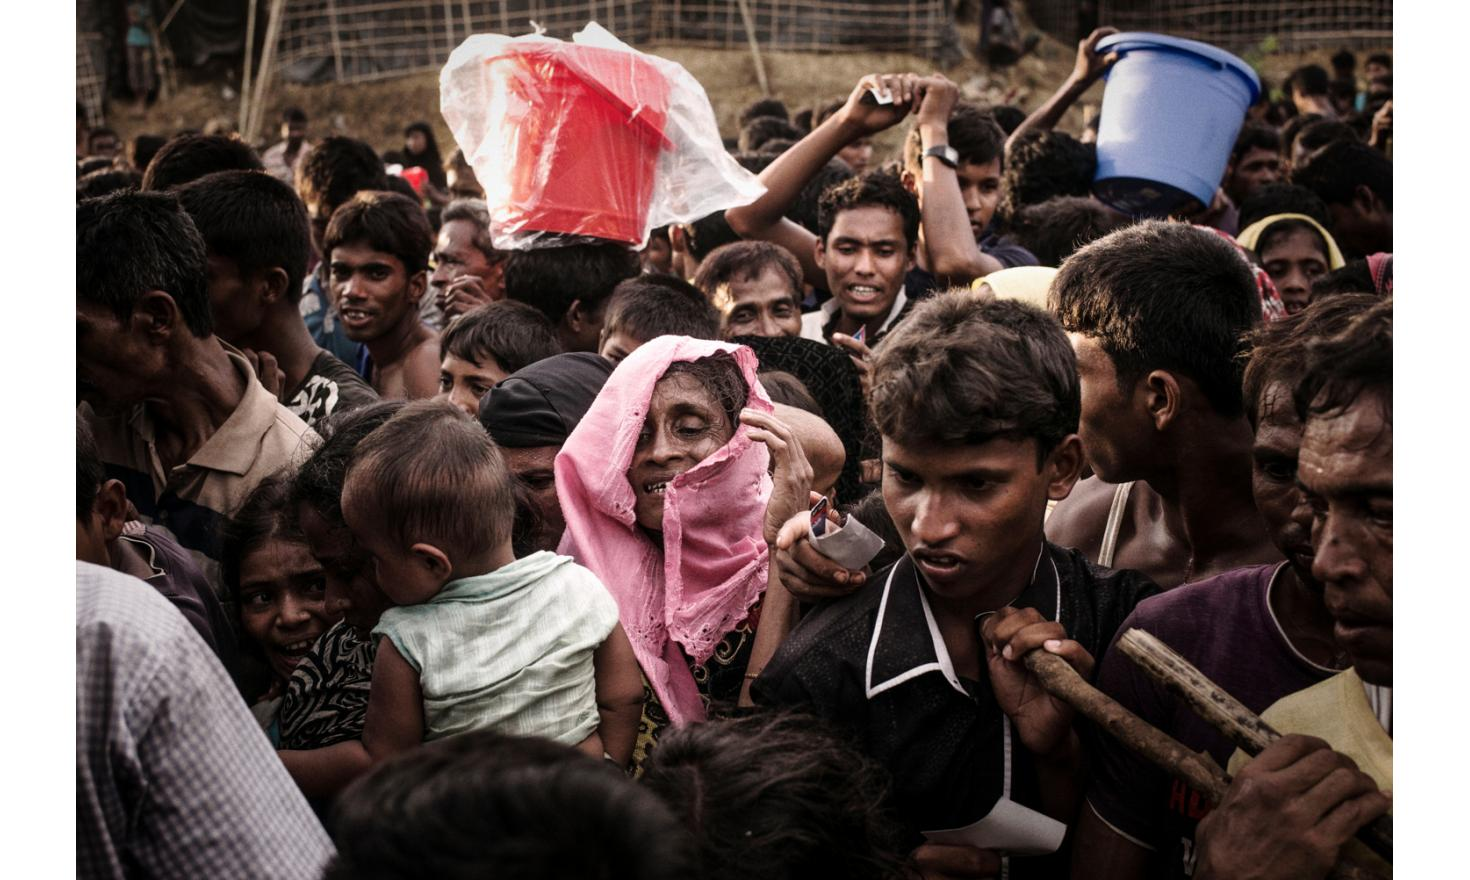 Hundreds of thousands of unregistered Rohingya refugees are  believed to live in Cox Bazar district , according to UN High Commissioner for Refugees estimates.